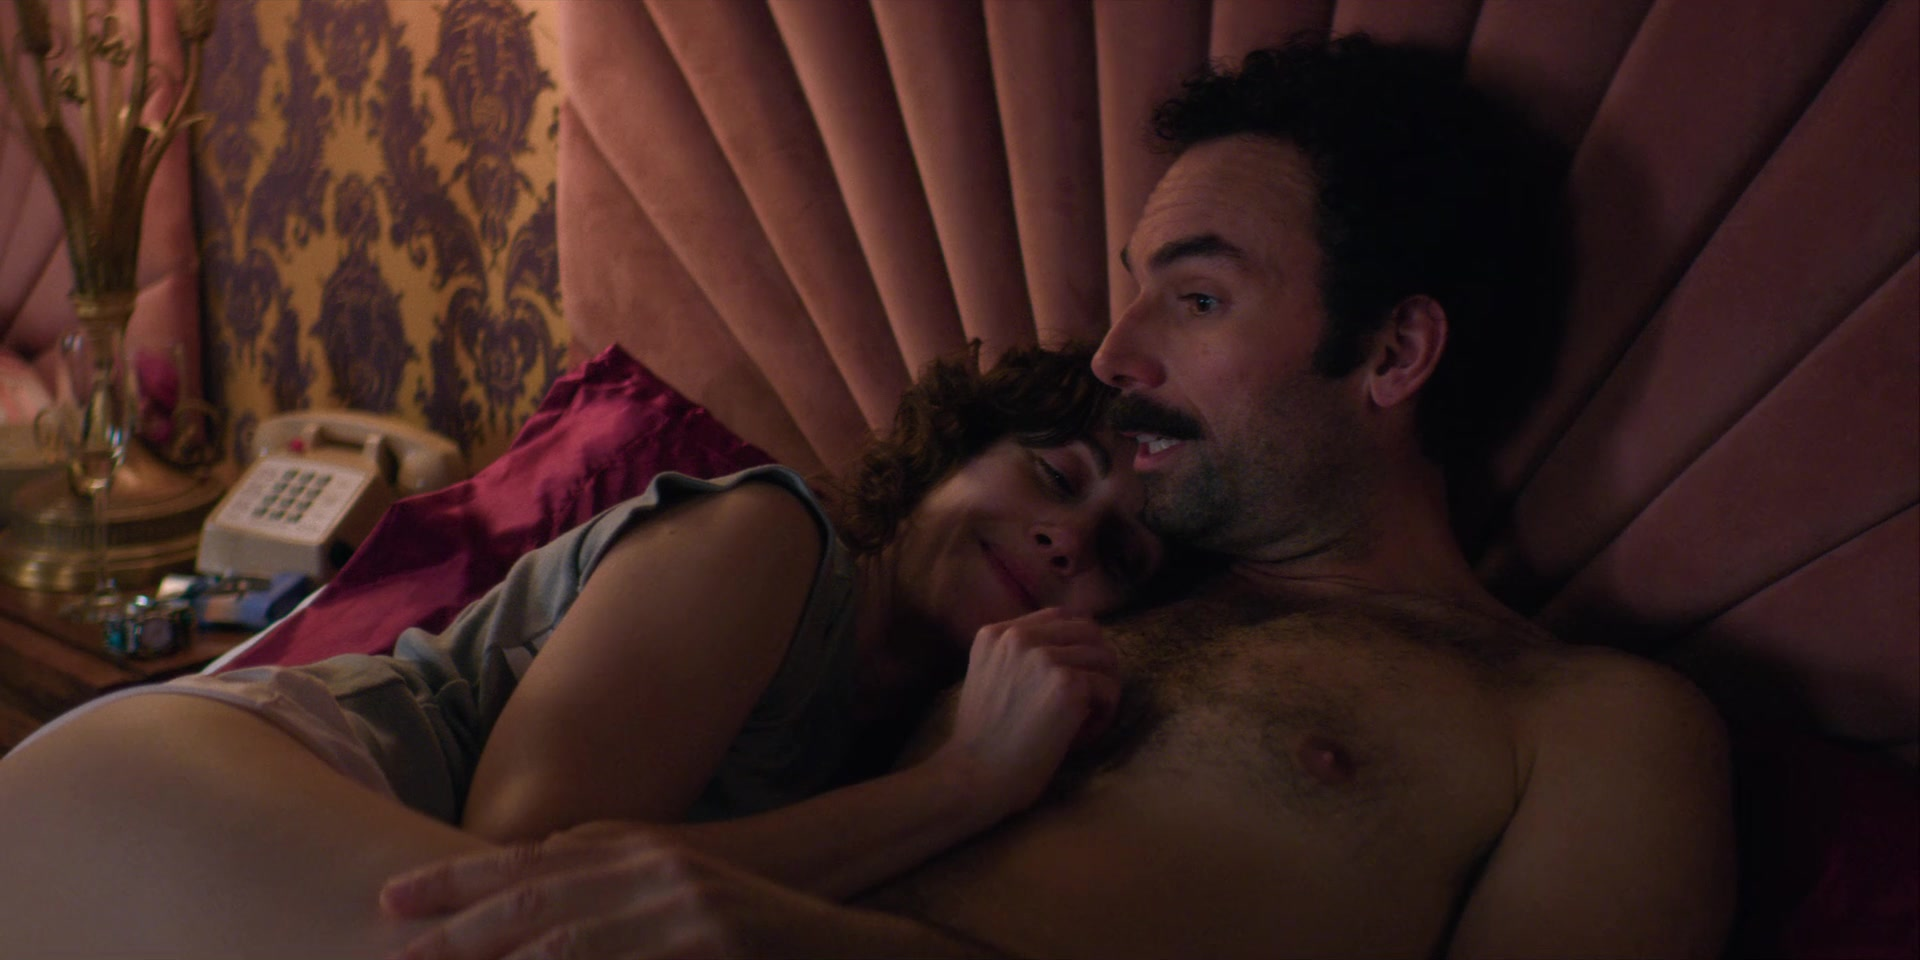 Alison Brie Glow Boobs betty gilpin, alison brie nude - glow s03e04 (2019) video